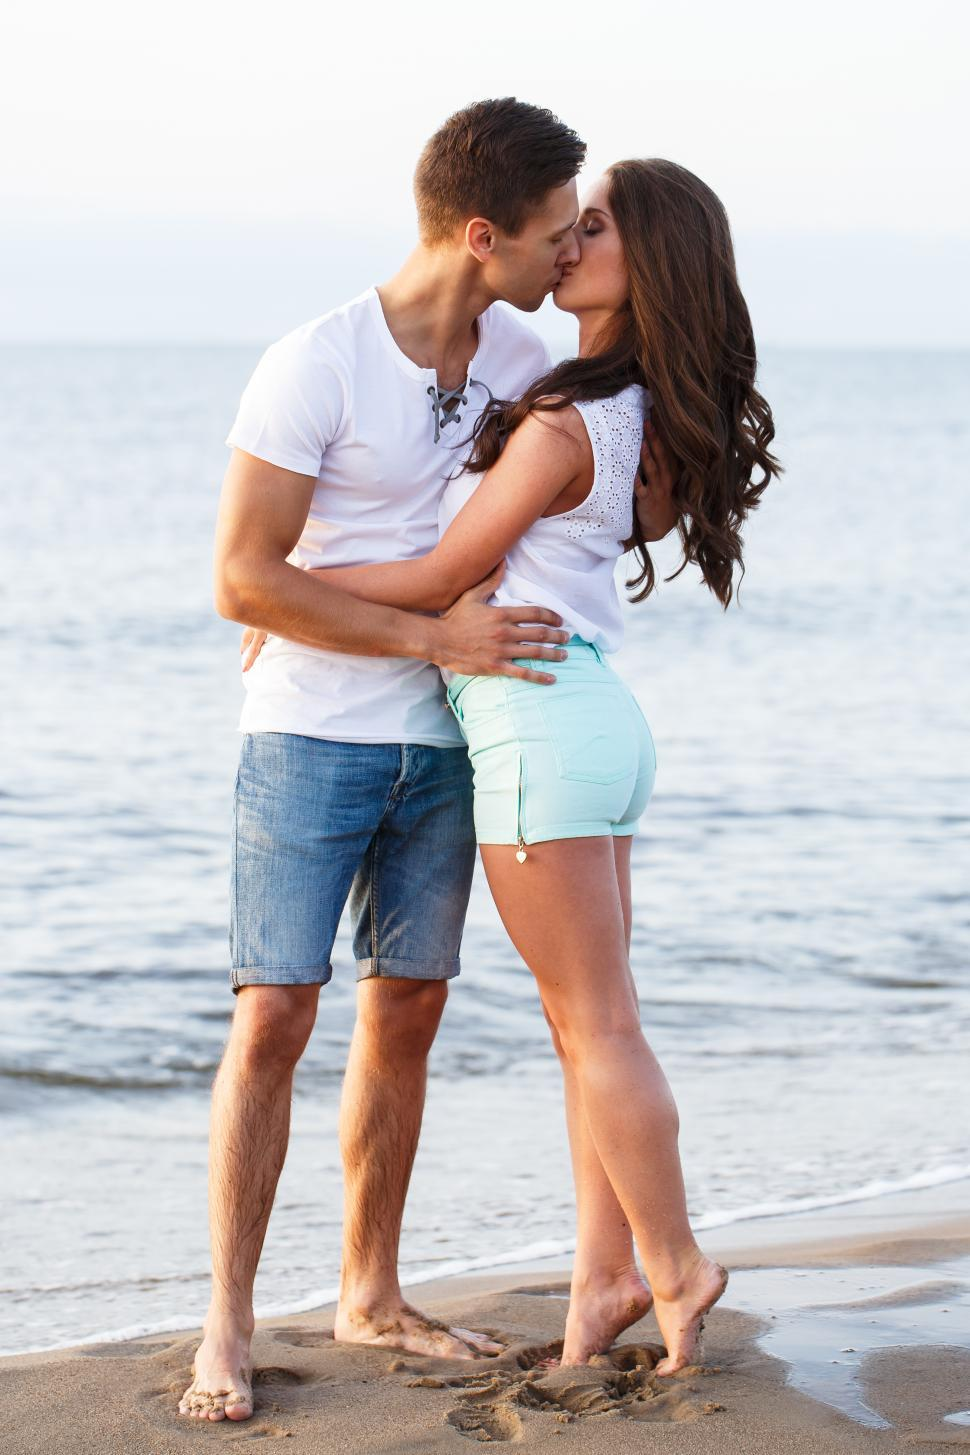 Download Free Stock Photo of A kiss on the beach